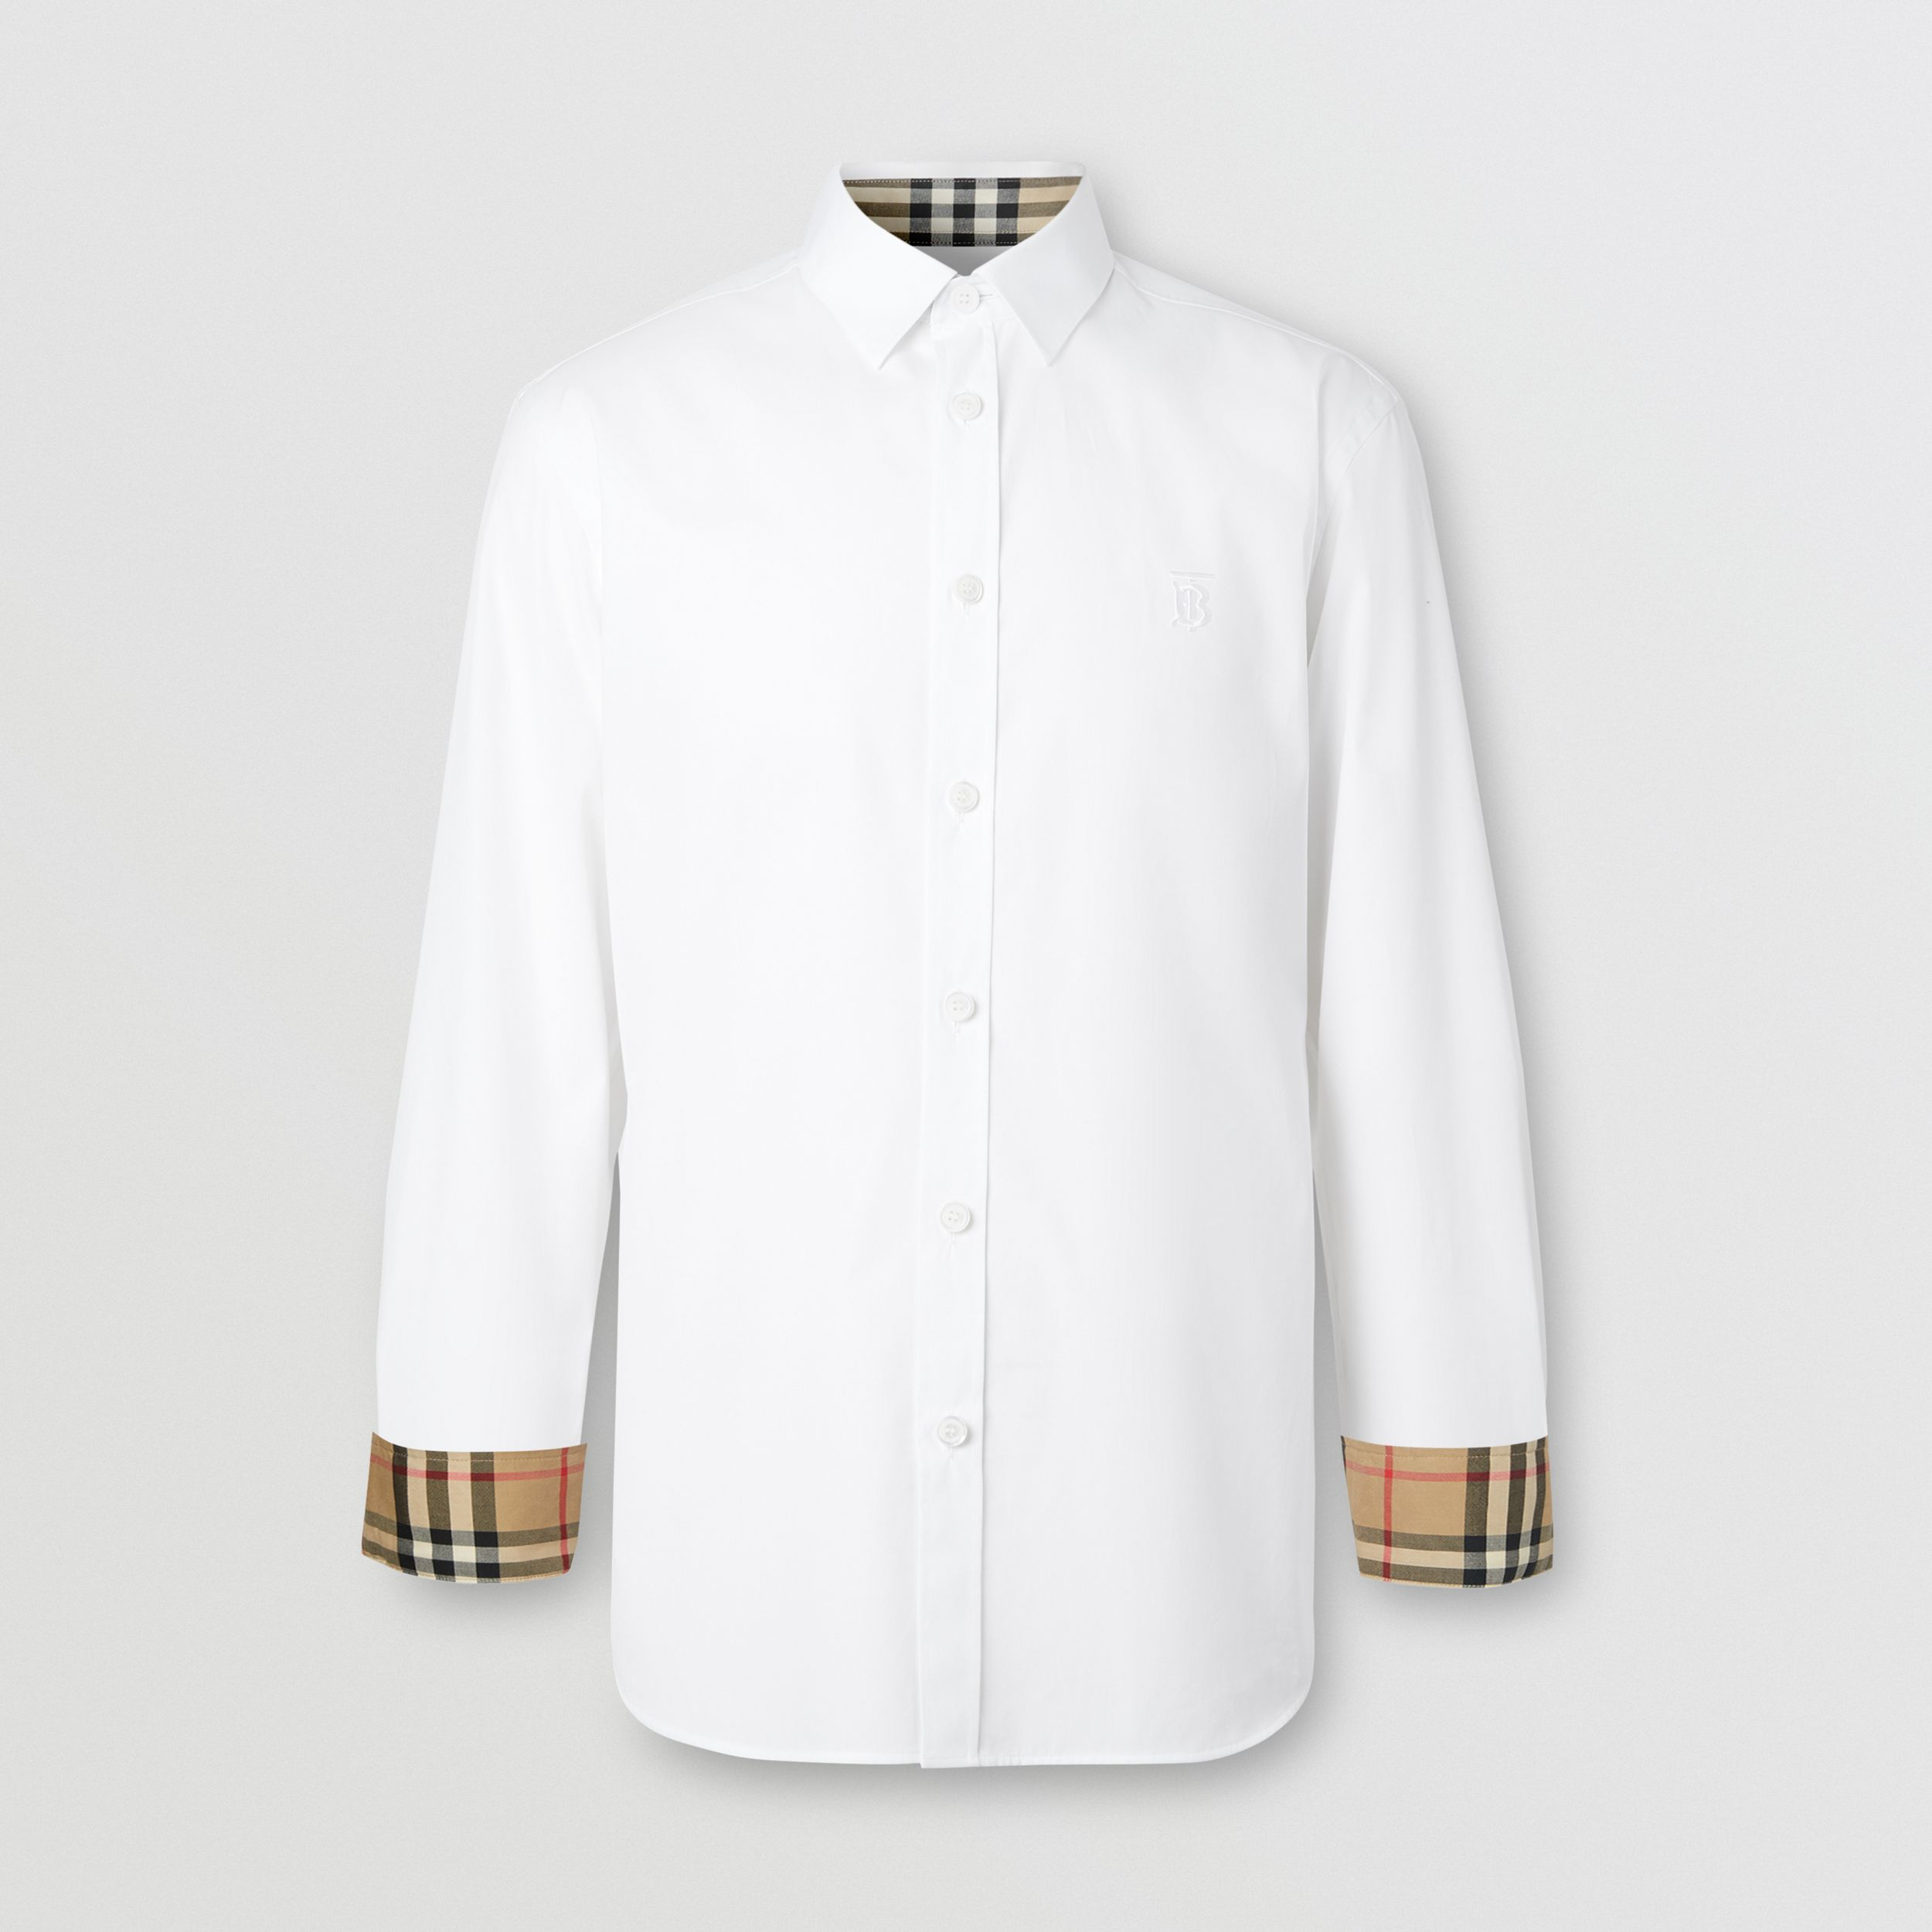 Slim Fit Monogram Motif Stretch Cotton Poplin Shirt in White - Men | Burberry Hong Kong S.A.R. - 4